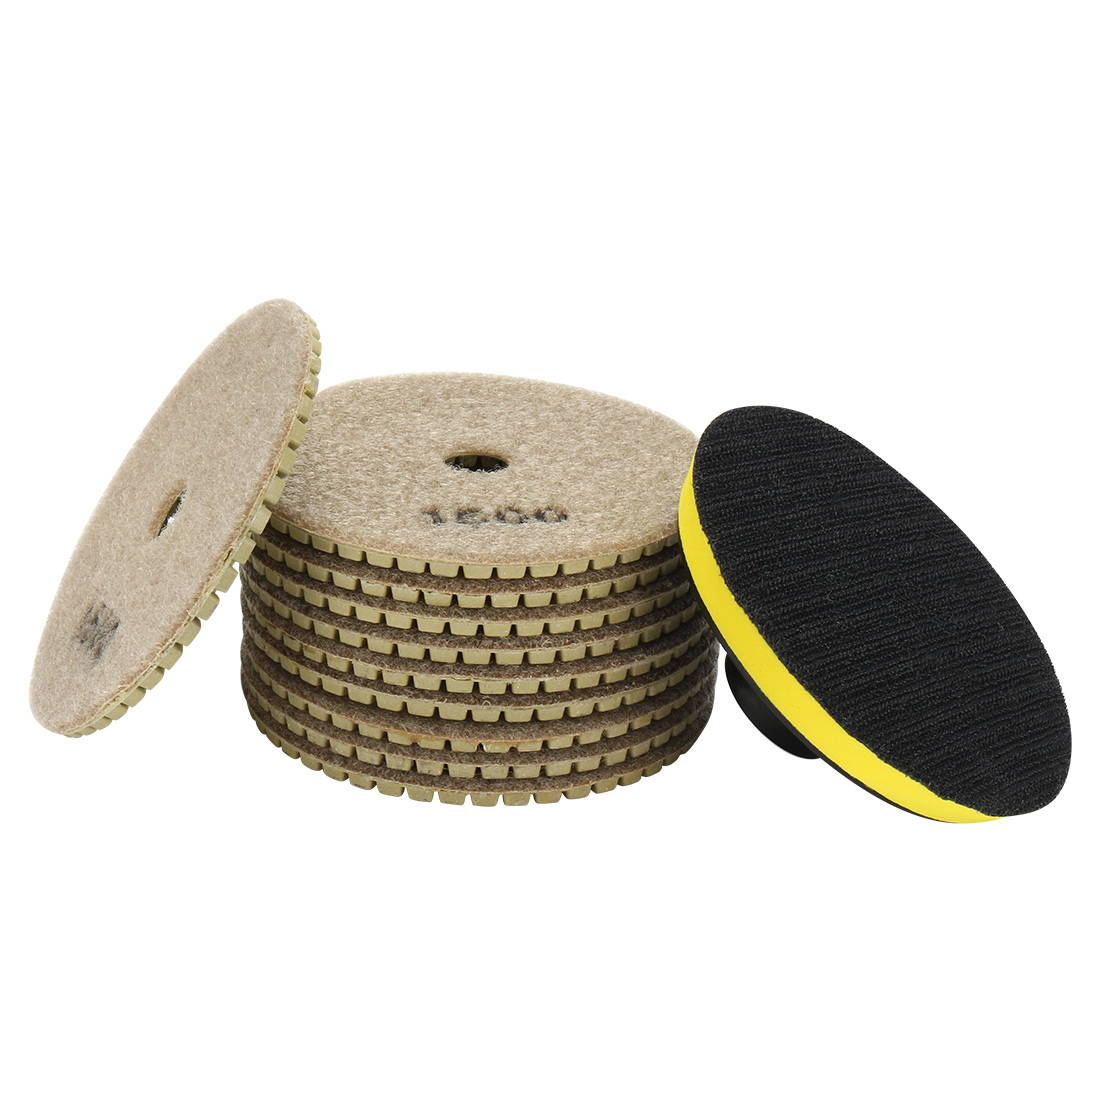 "4"" Diamond Wet Polishing Pad Disc Grit 1500 10pcs for Granite Concrete Marble"